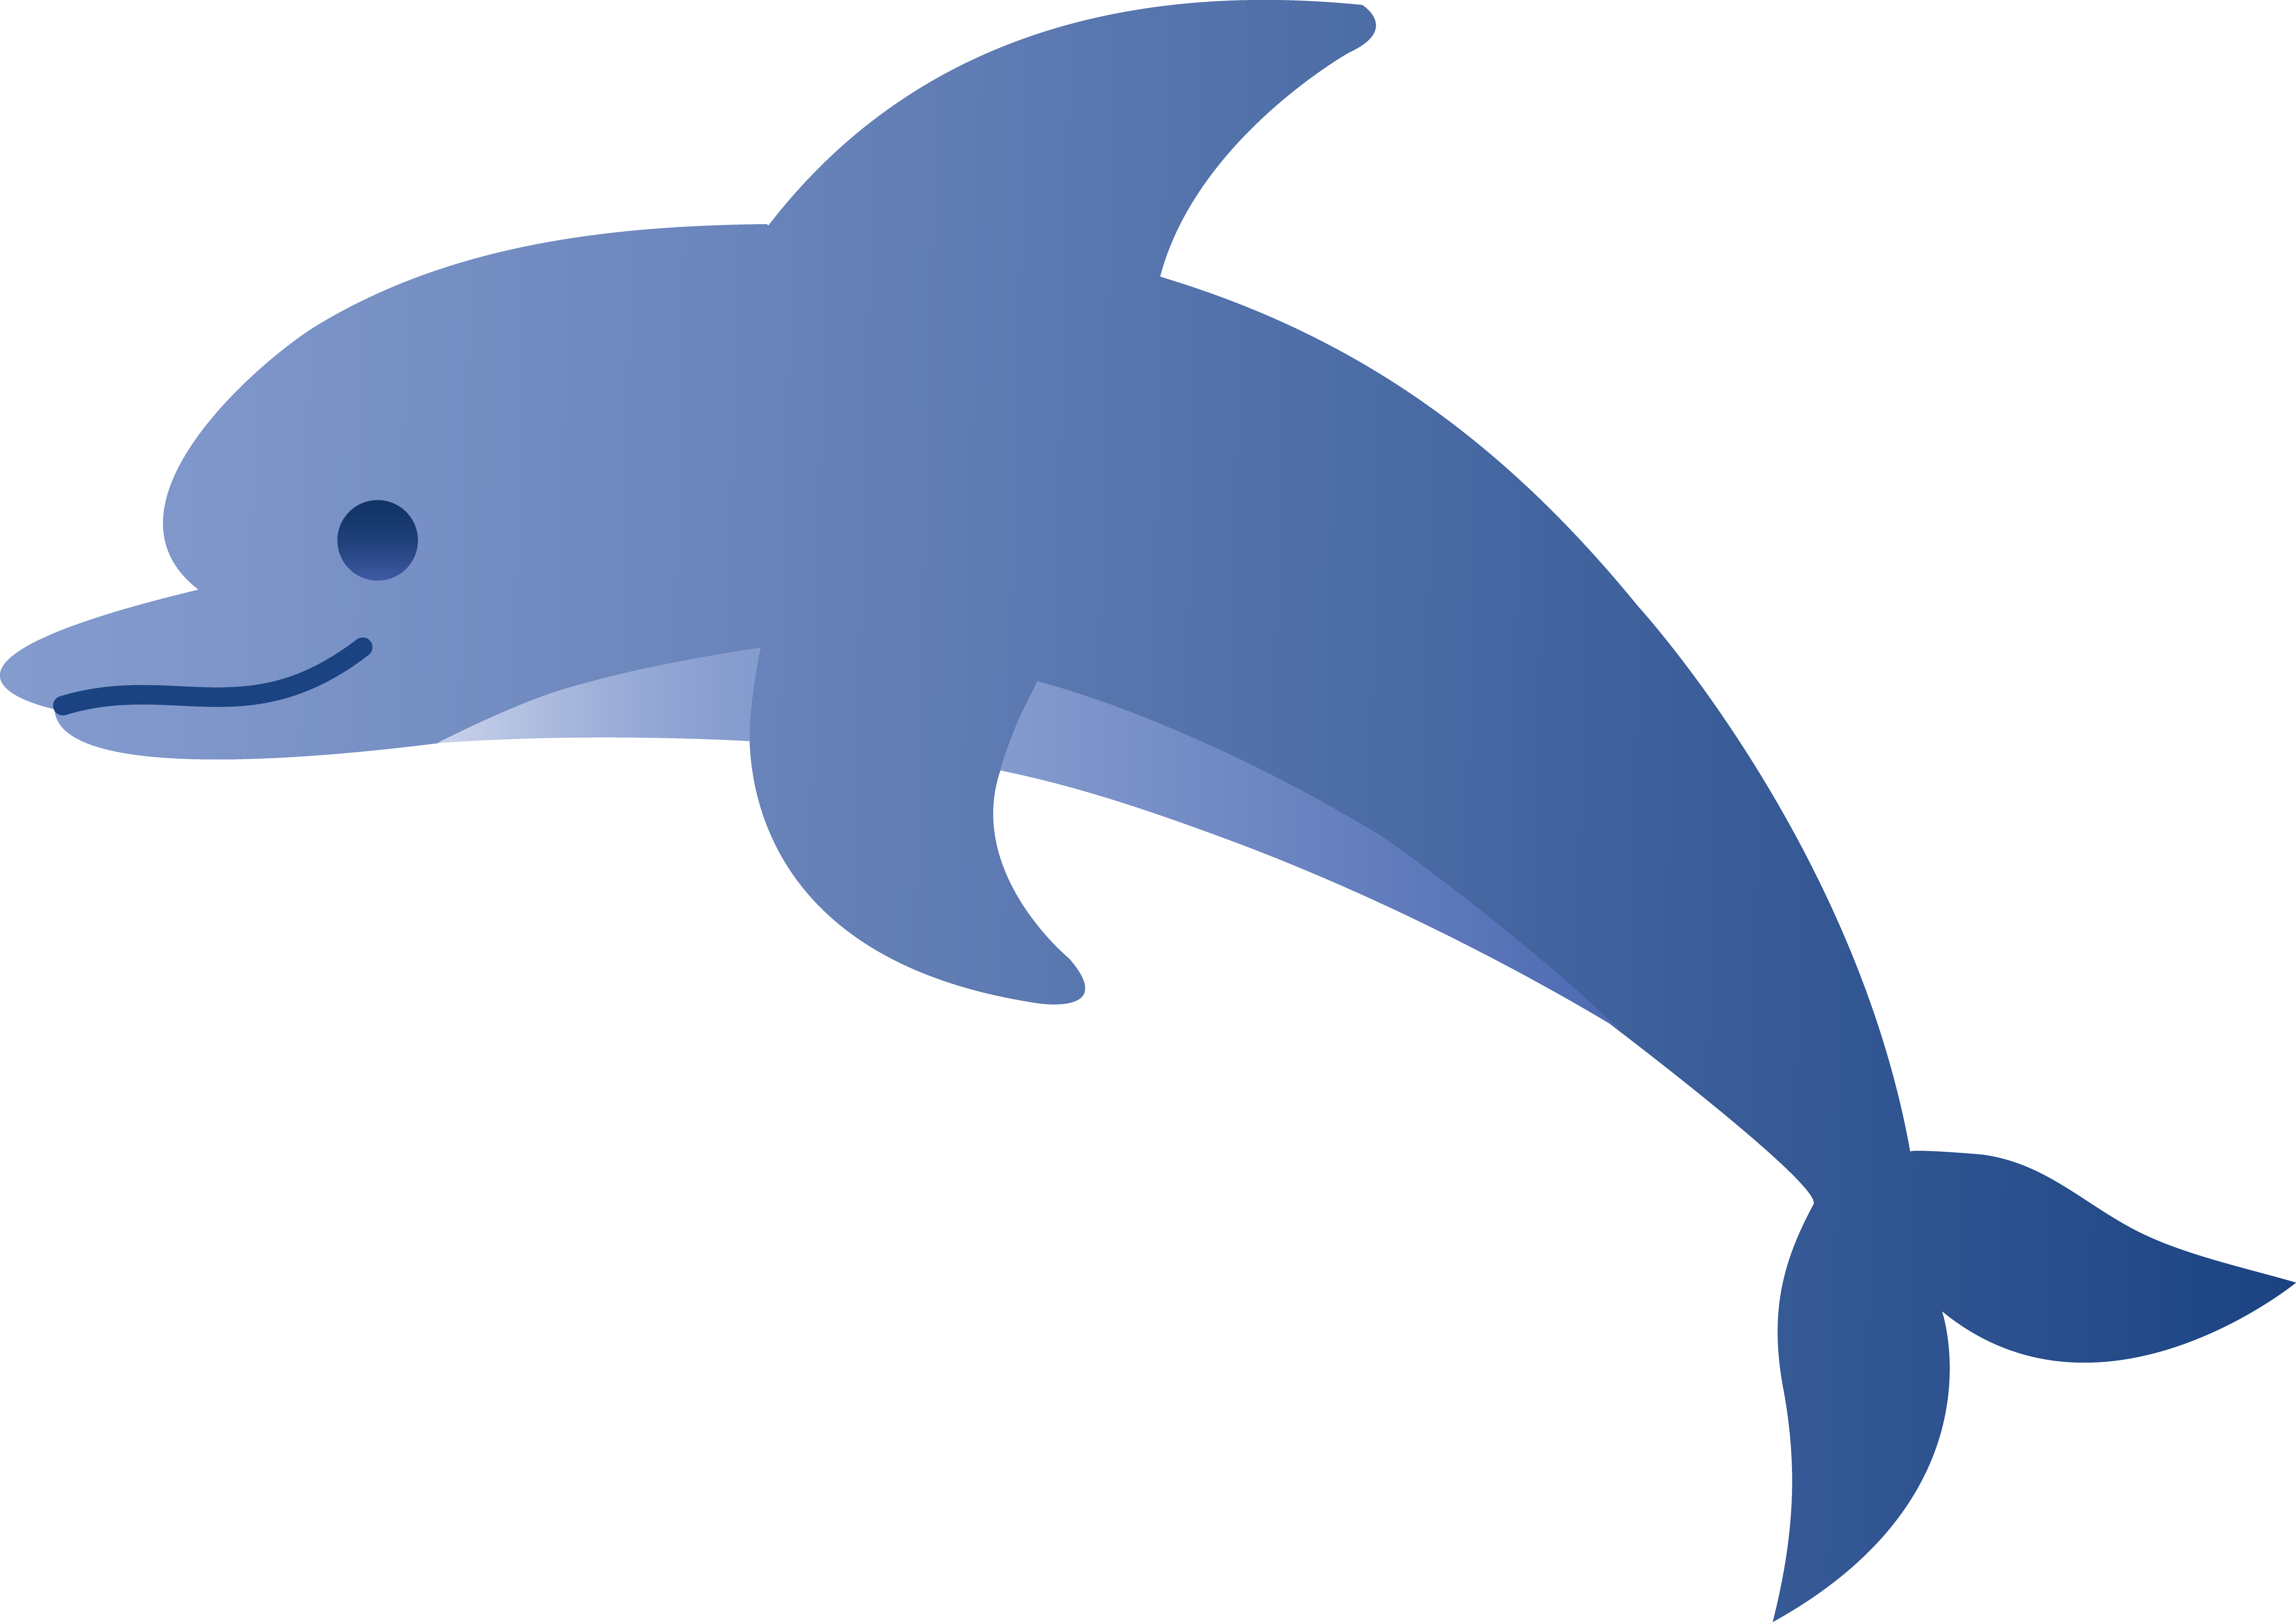 Dolphin clipart illustrator. Free content royalty clip